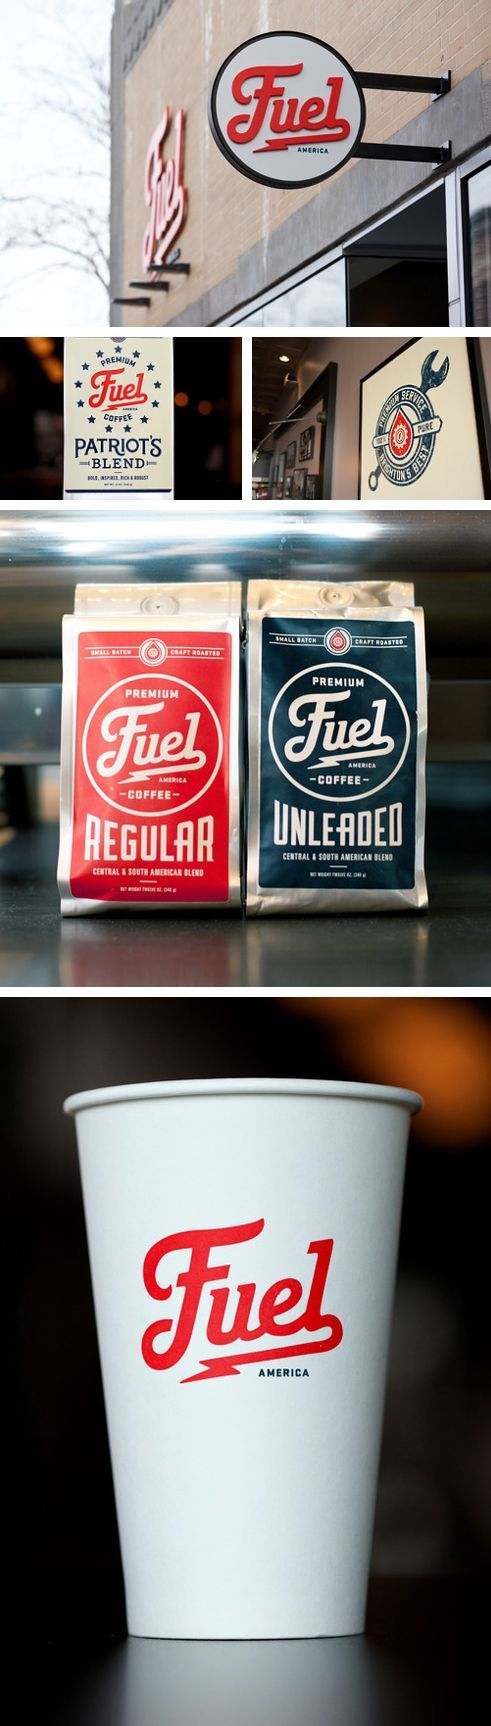 Fuel coffee branding Uploaded by user